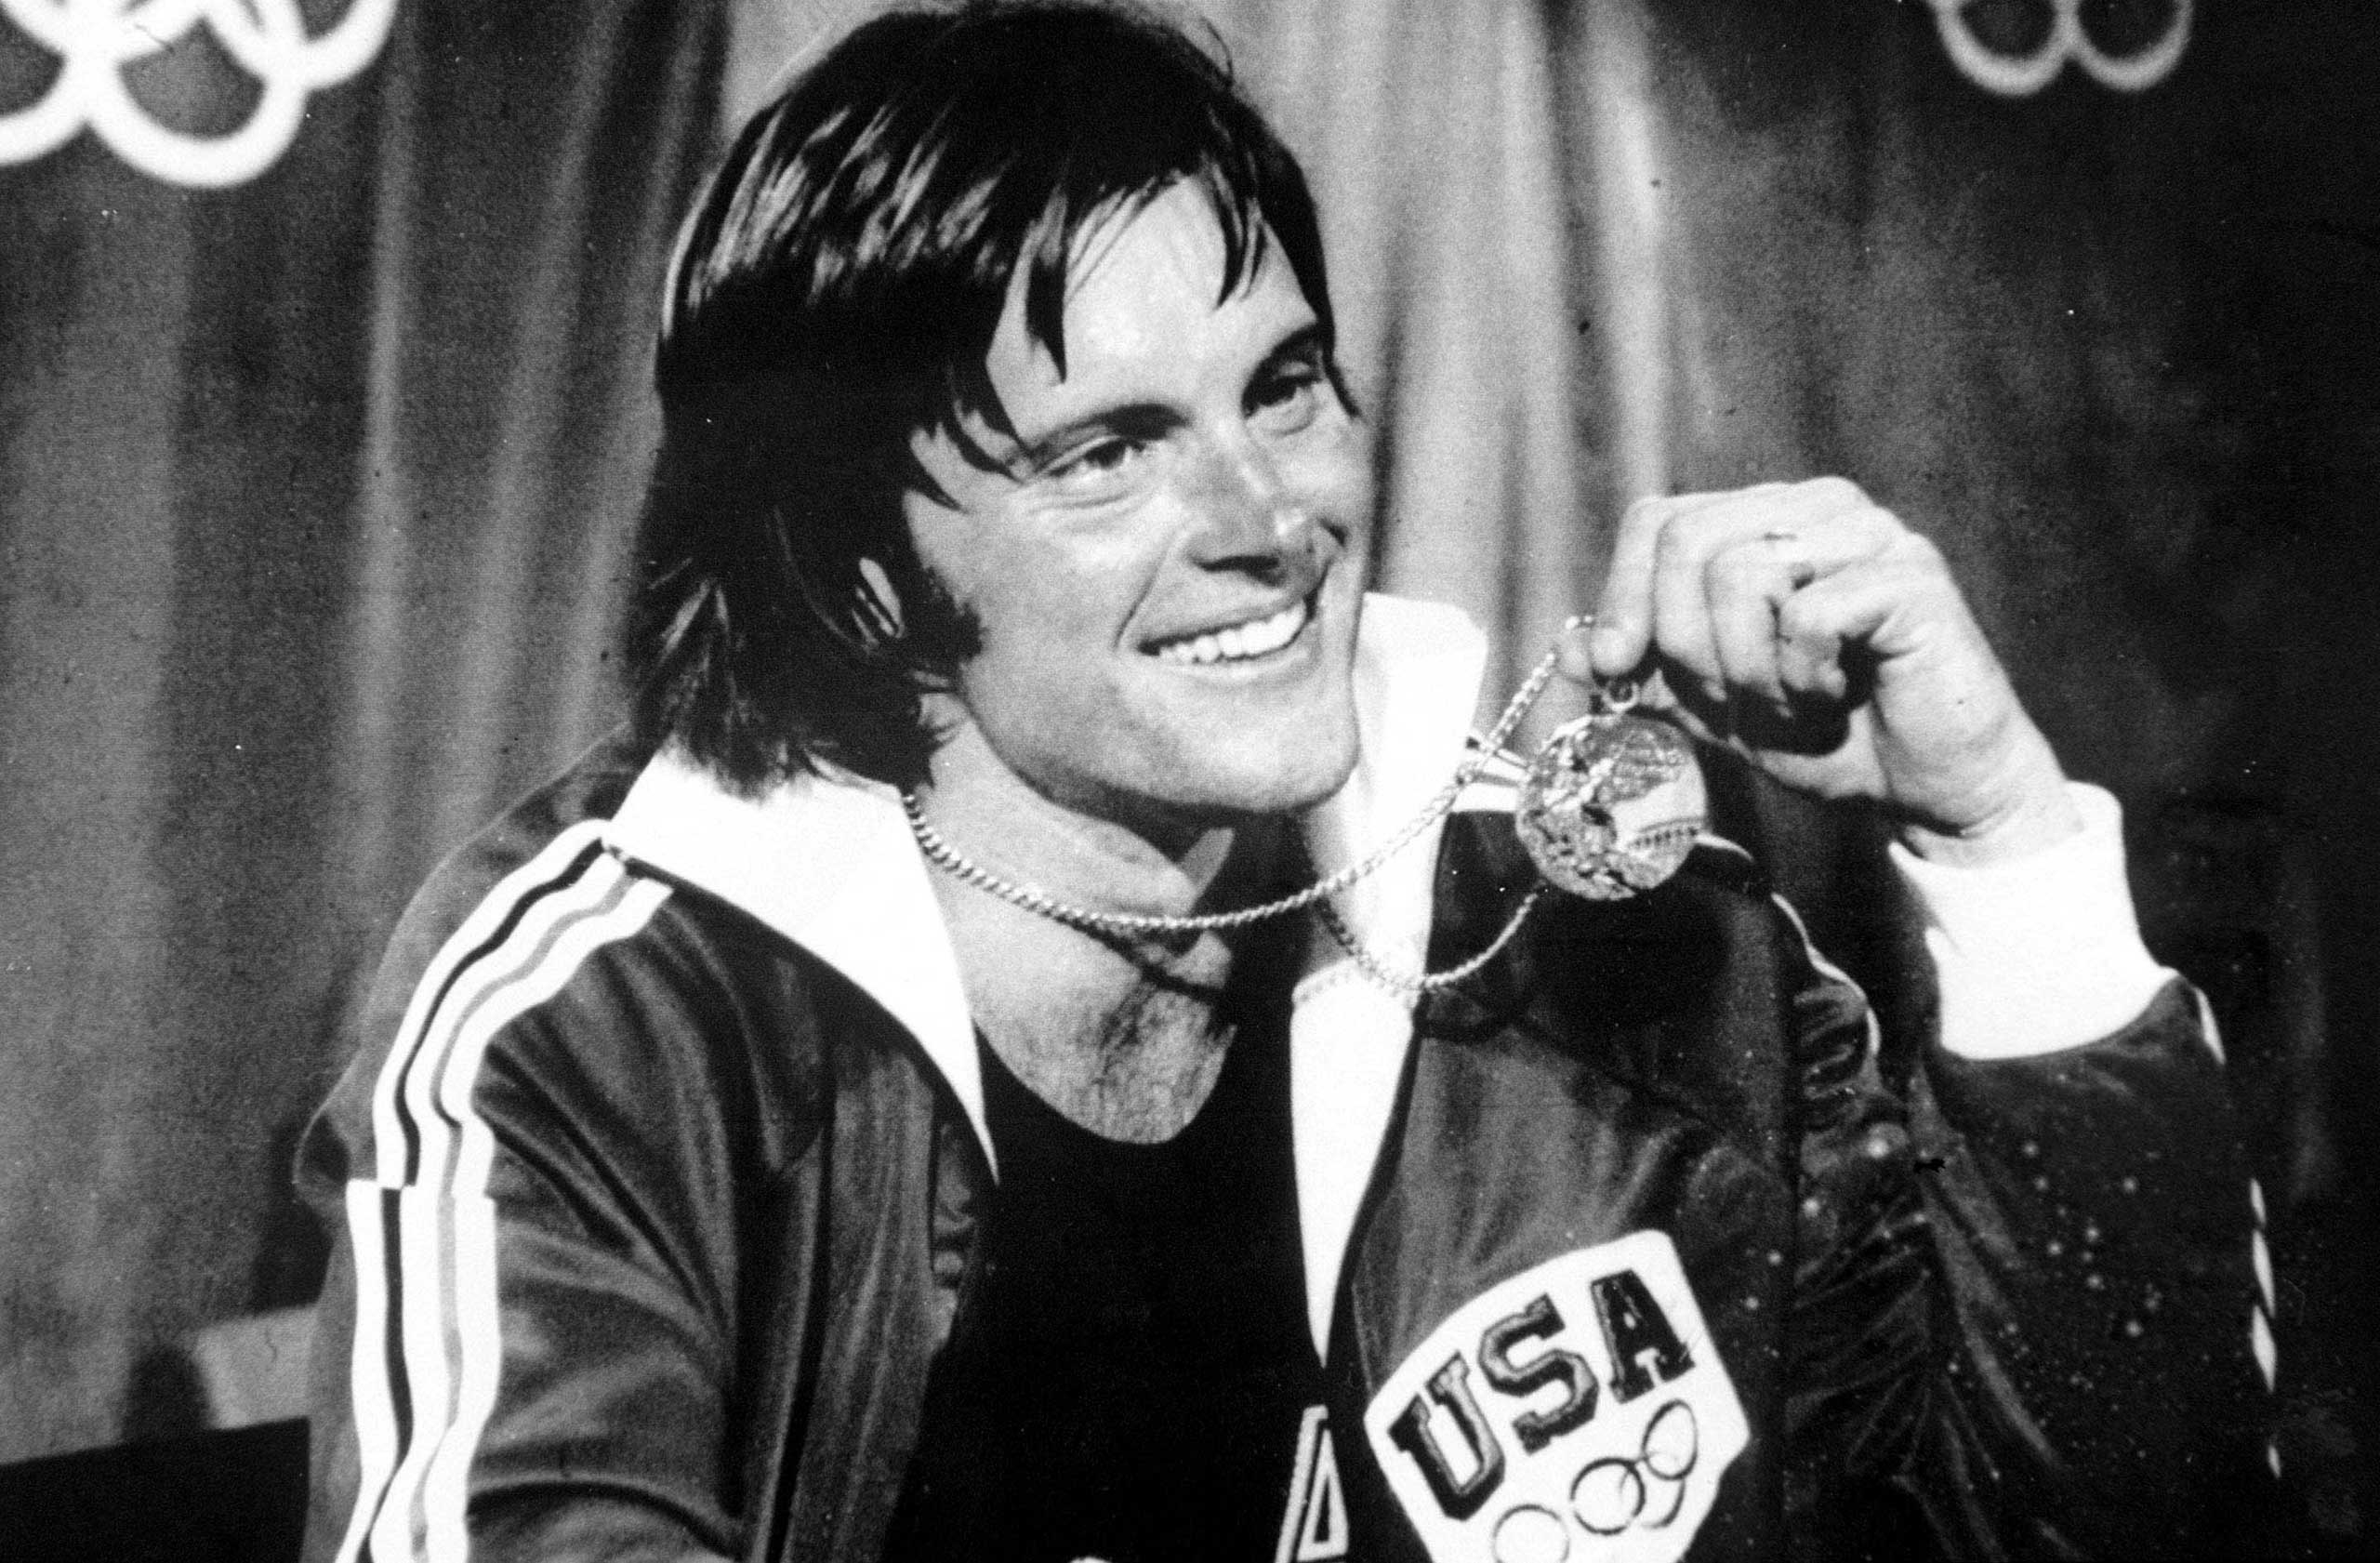 At the 1976 Summer Olympics in Montreal, Bruce Jenner won the gold medal in the decathlon, setting the world record at 8,616 points.